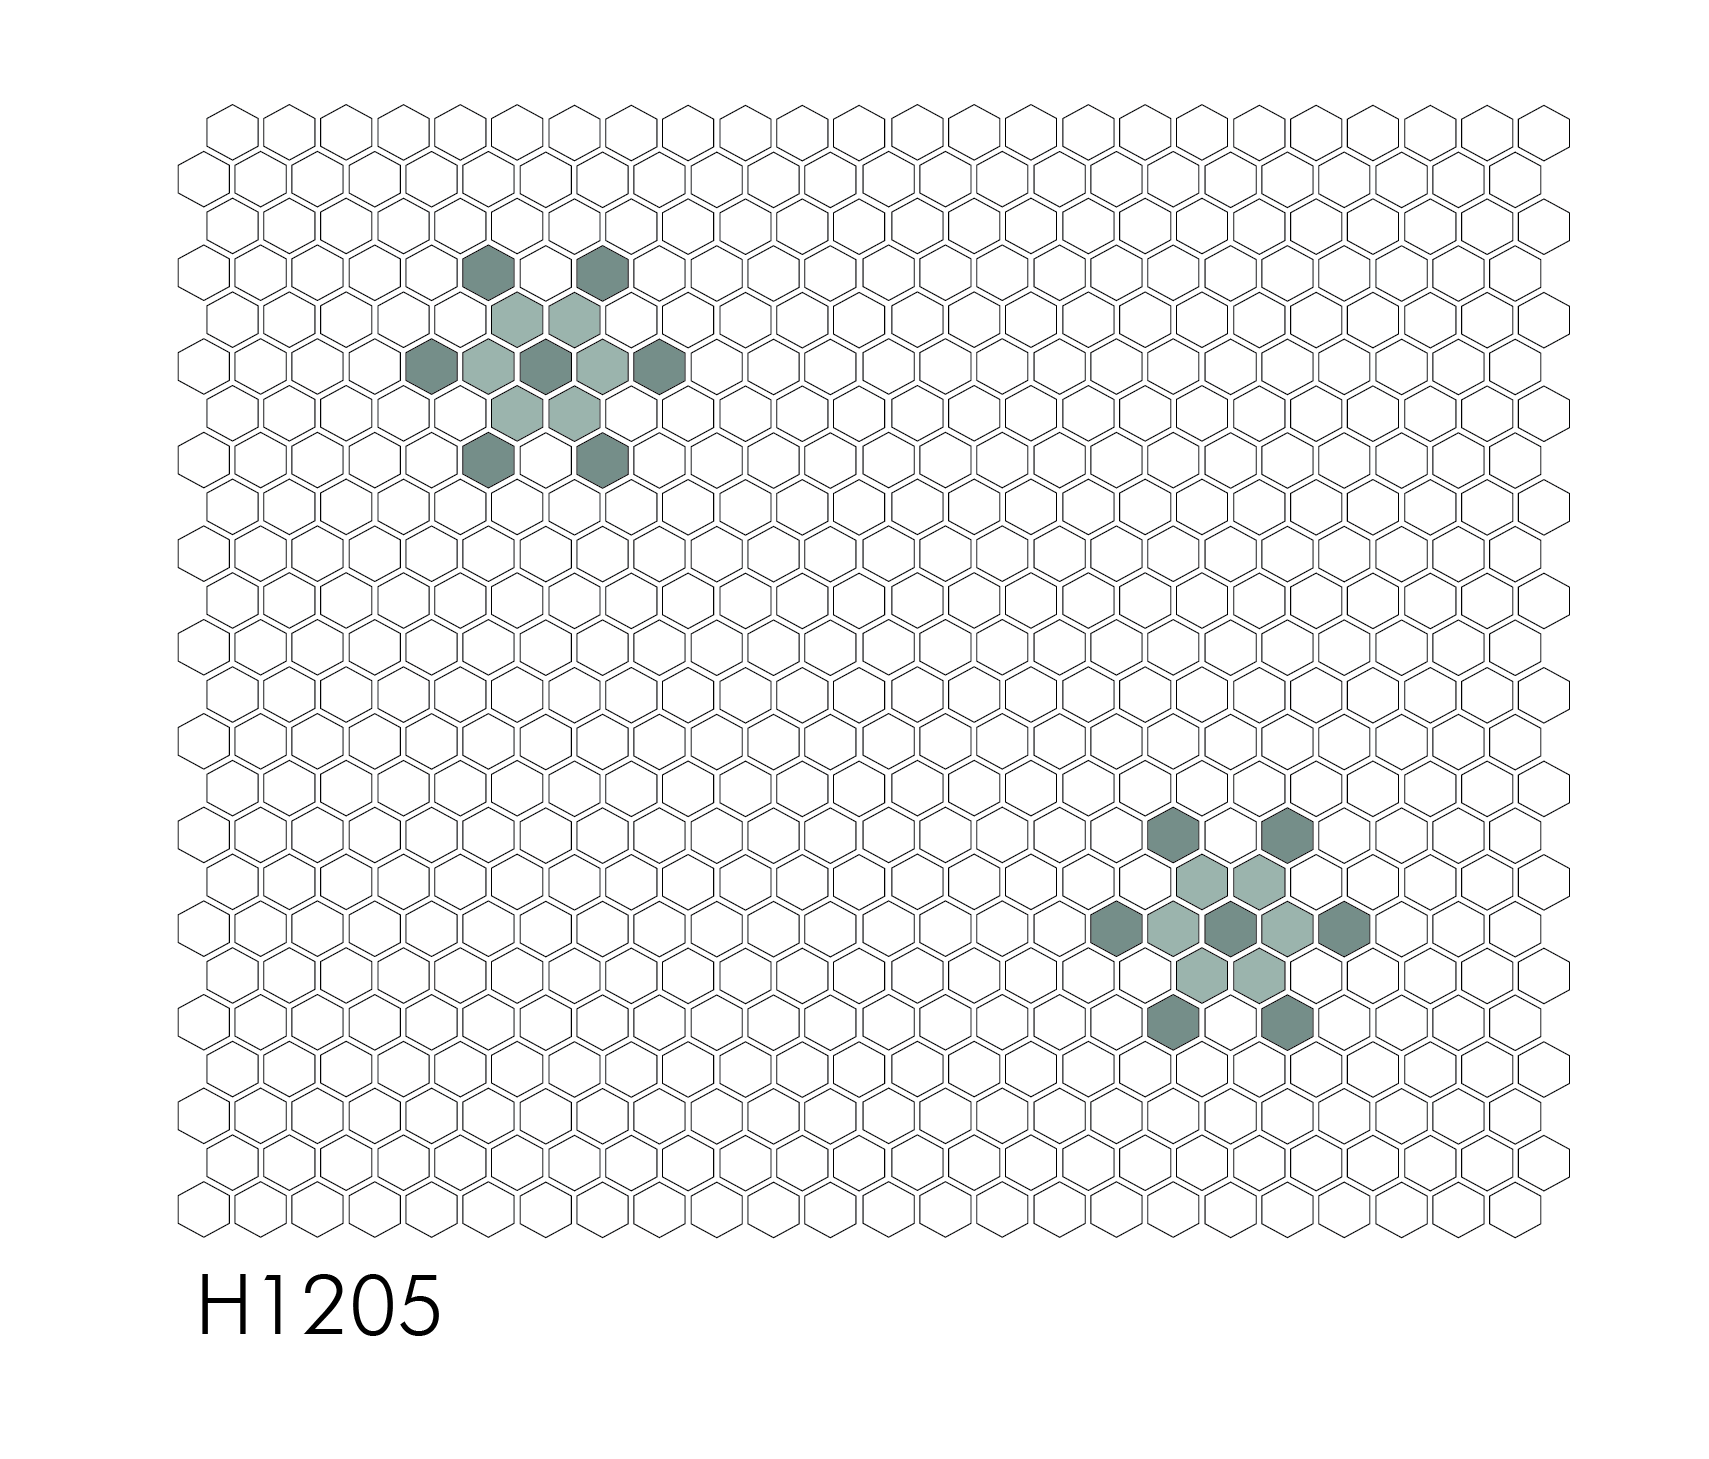 "H1205- Single Snowflake 1"" Hexagon Mosaic"